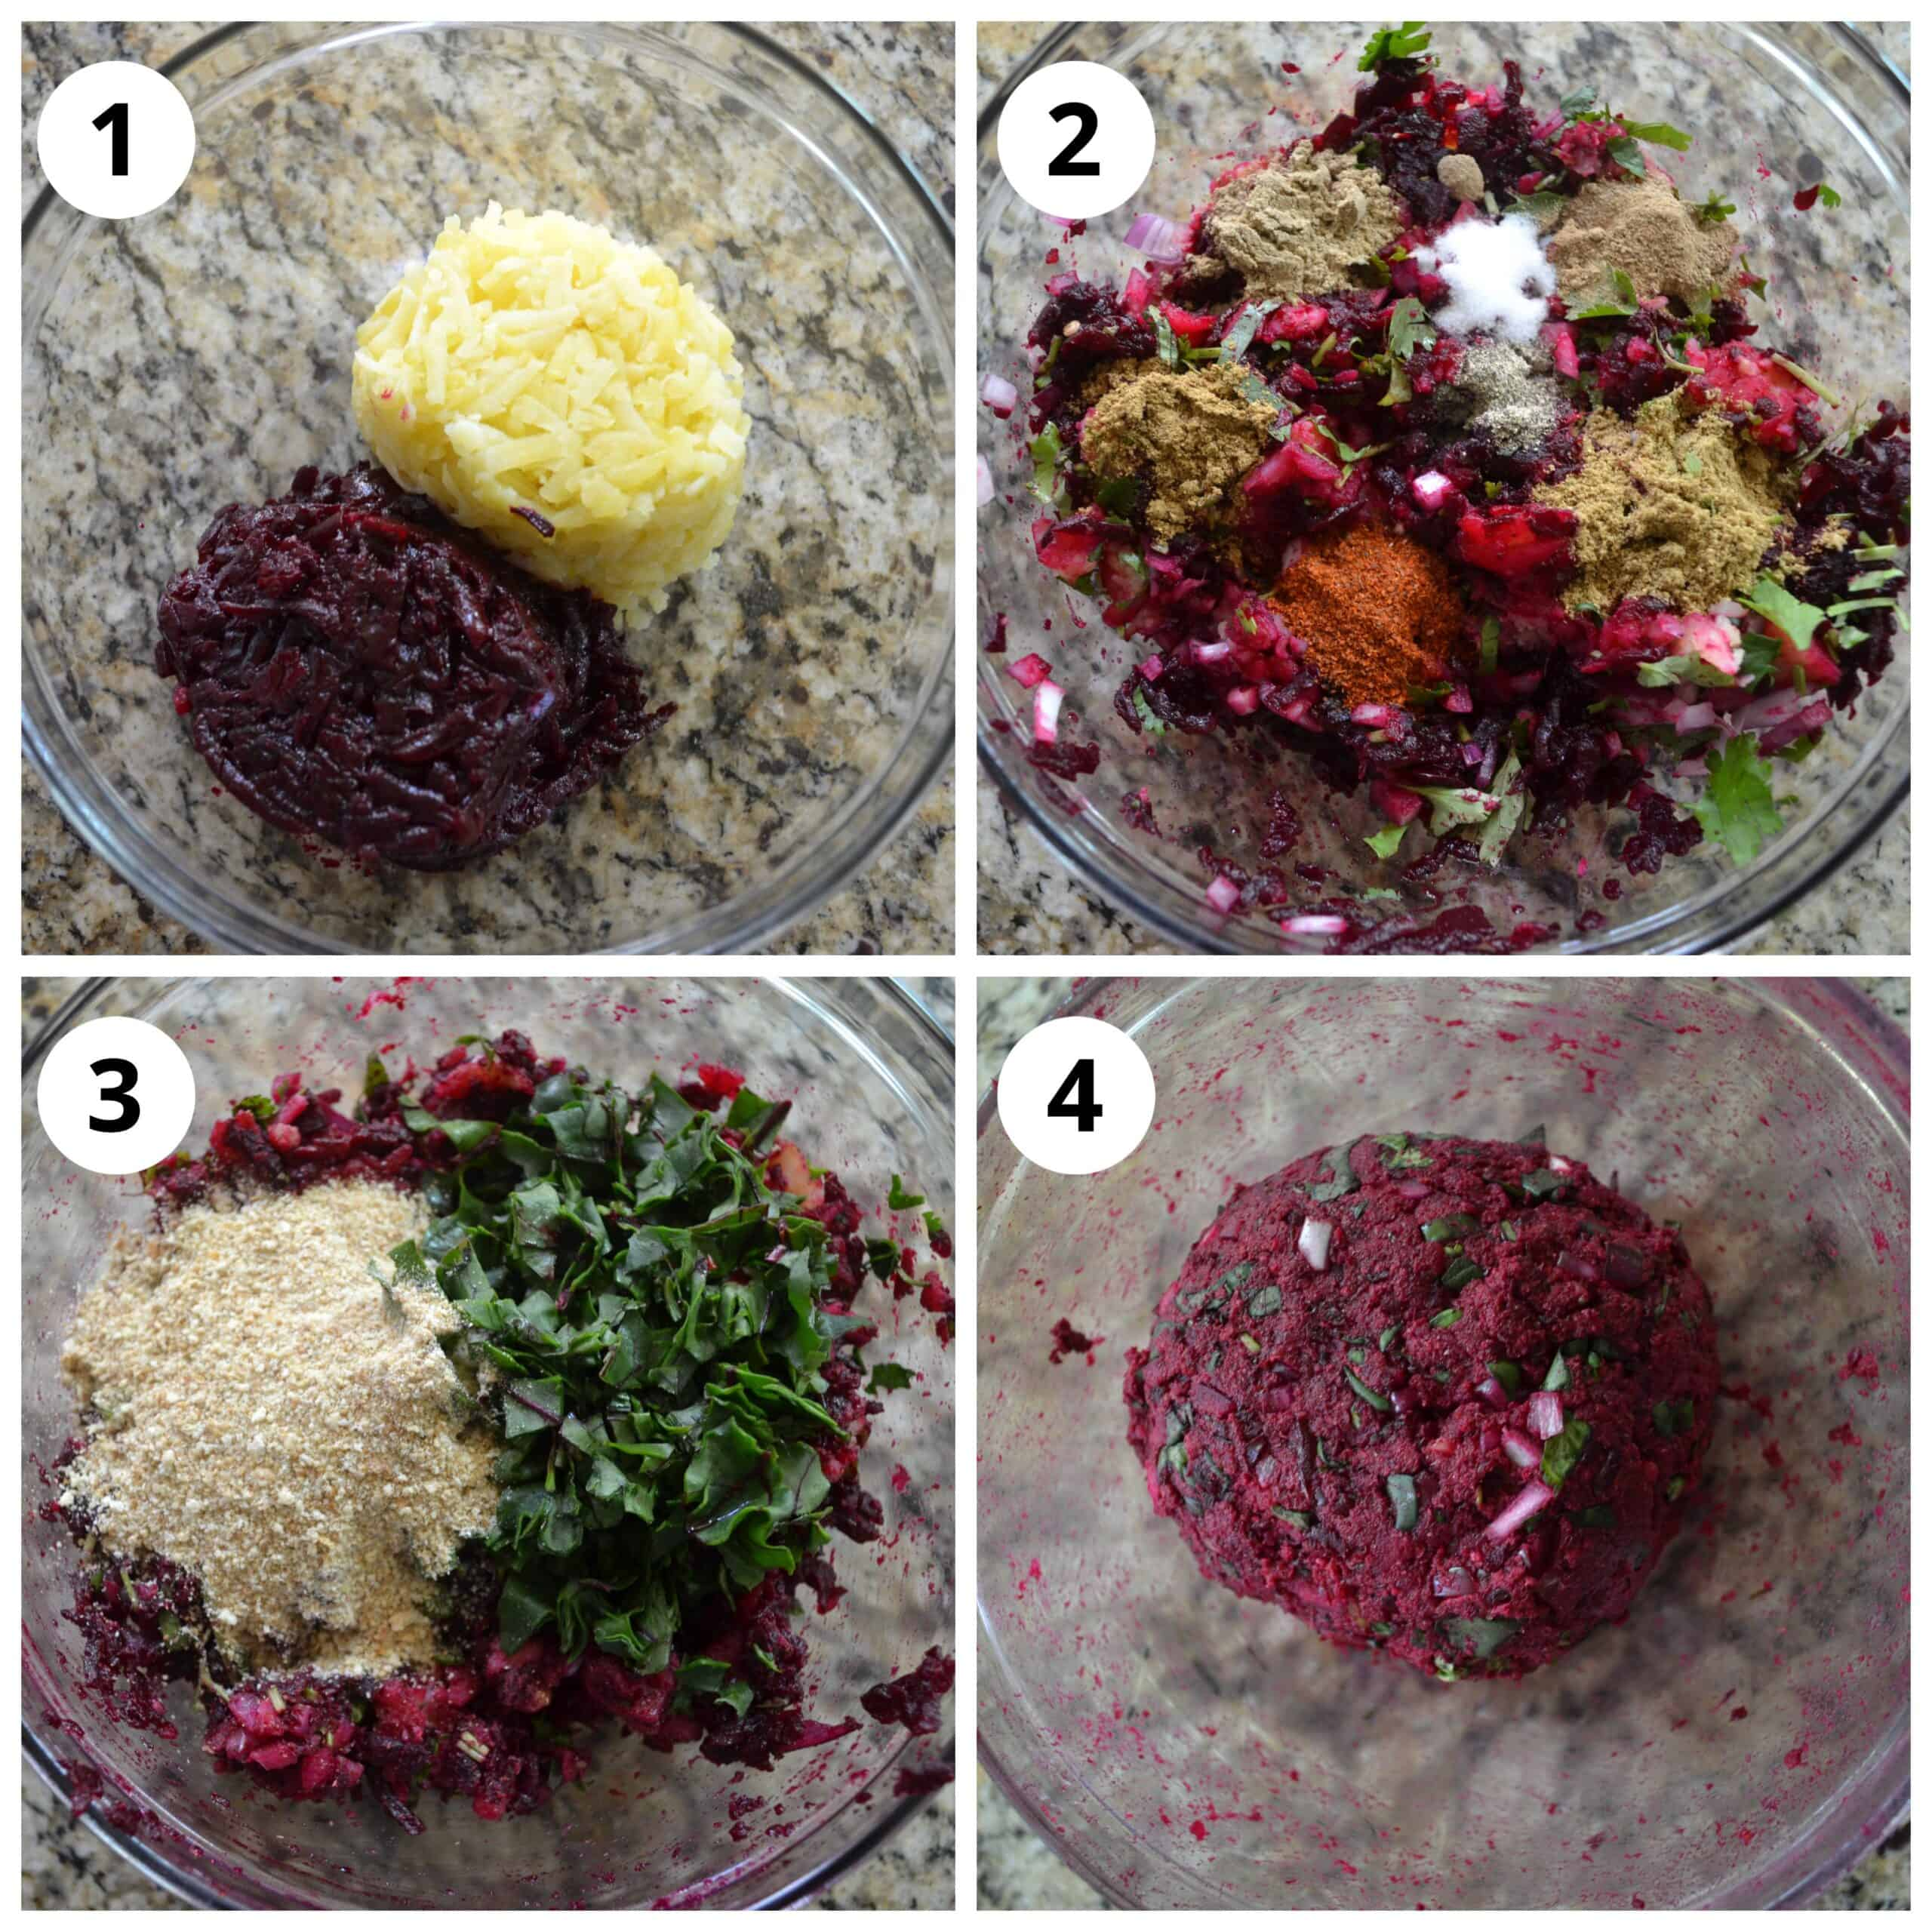 Make the beetroot cutlet mixture by mixing all ingredients